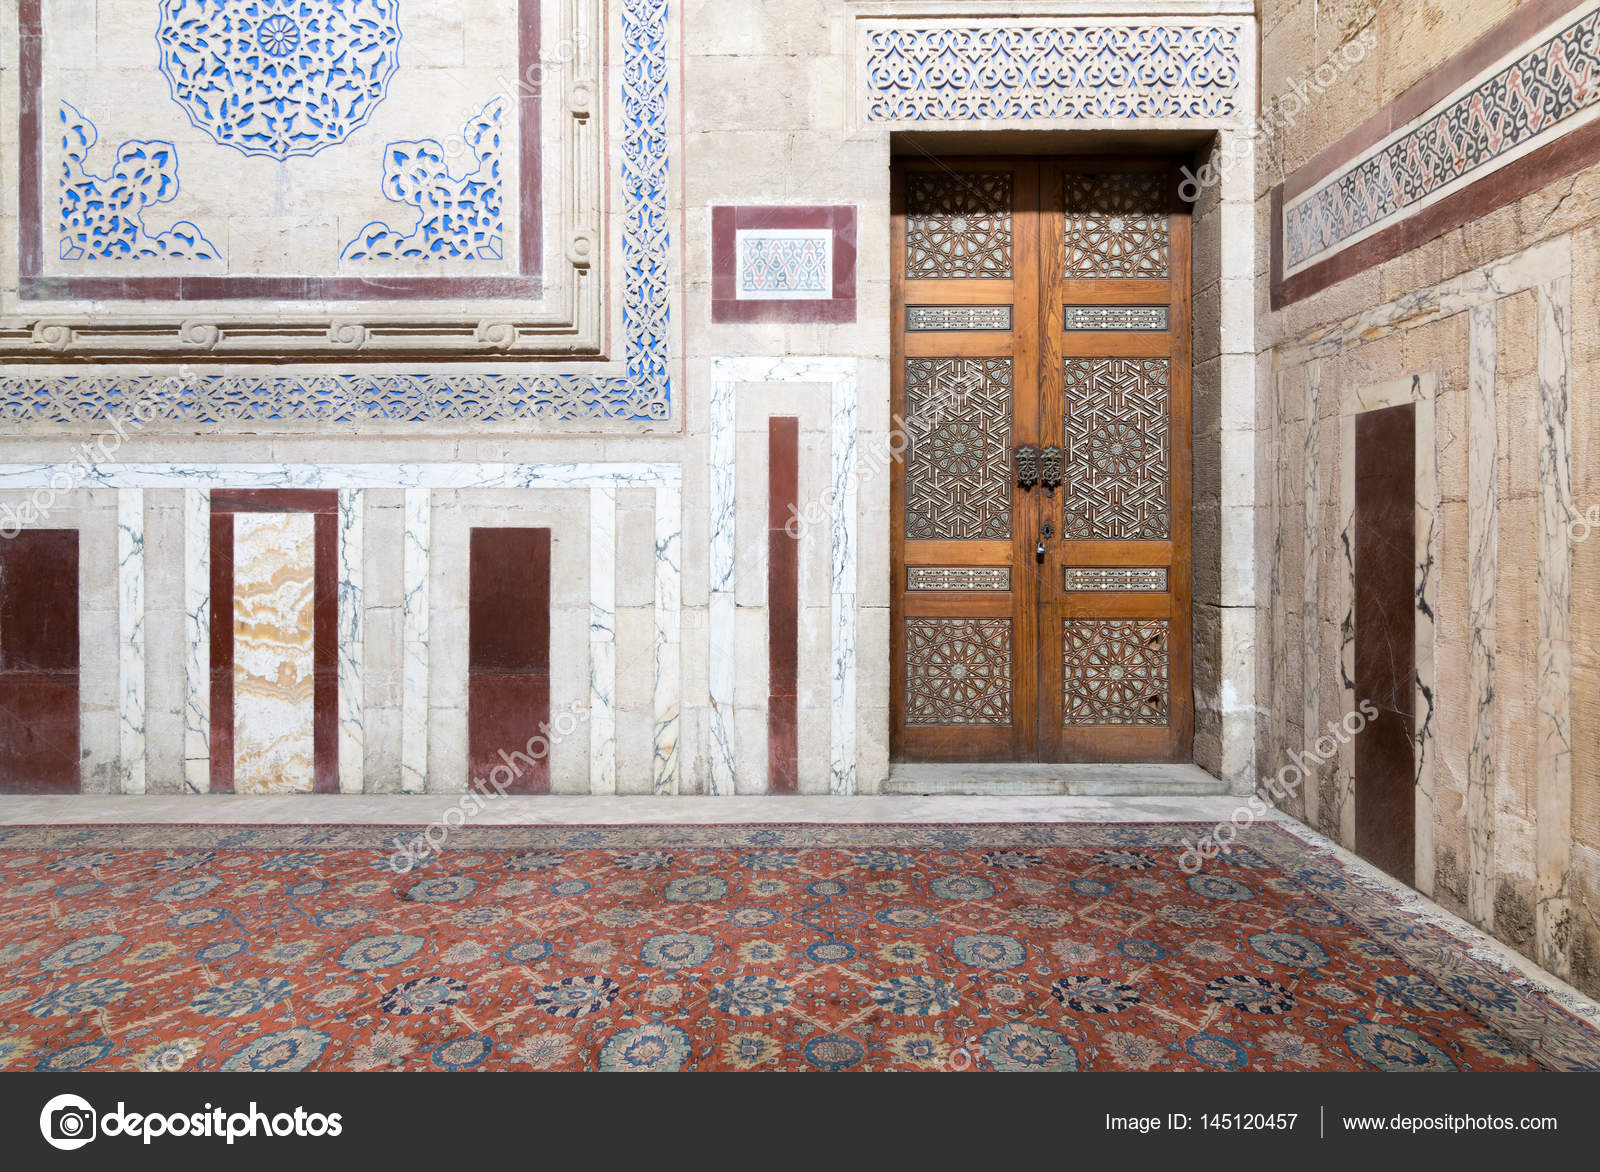 Cairo, Egypt   February 18, 2017: Interior Of Al Rifaii Mosque (Royal  Mosque) With Decorated Marble Wall And Ornate Wooden Door, Located In Front  The Cairo ...